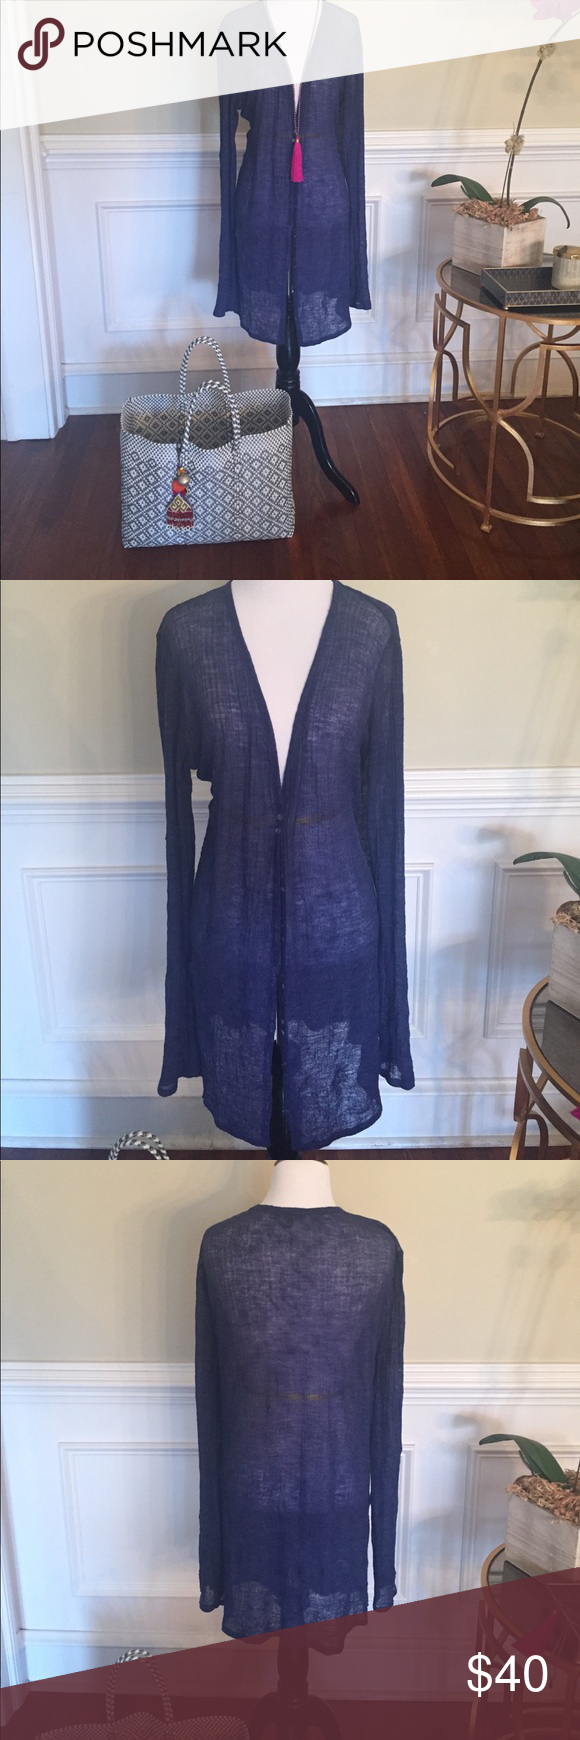 Eileen Fisher semi-sheer cardigan. Gorgeous Eileen Fisher sheer ...